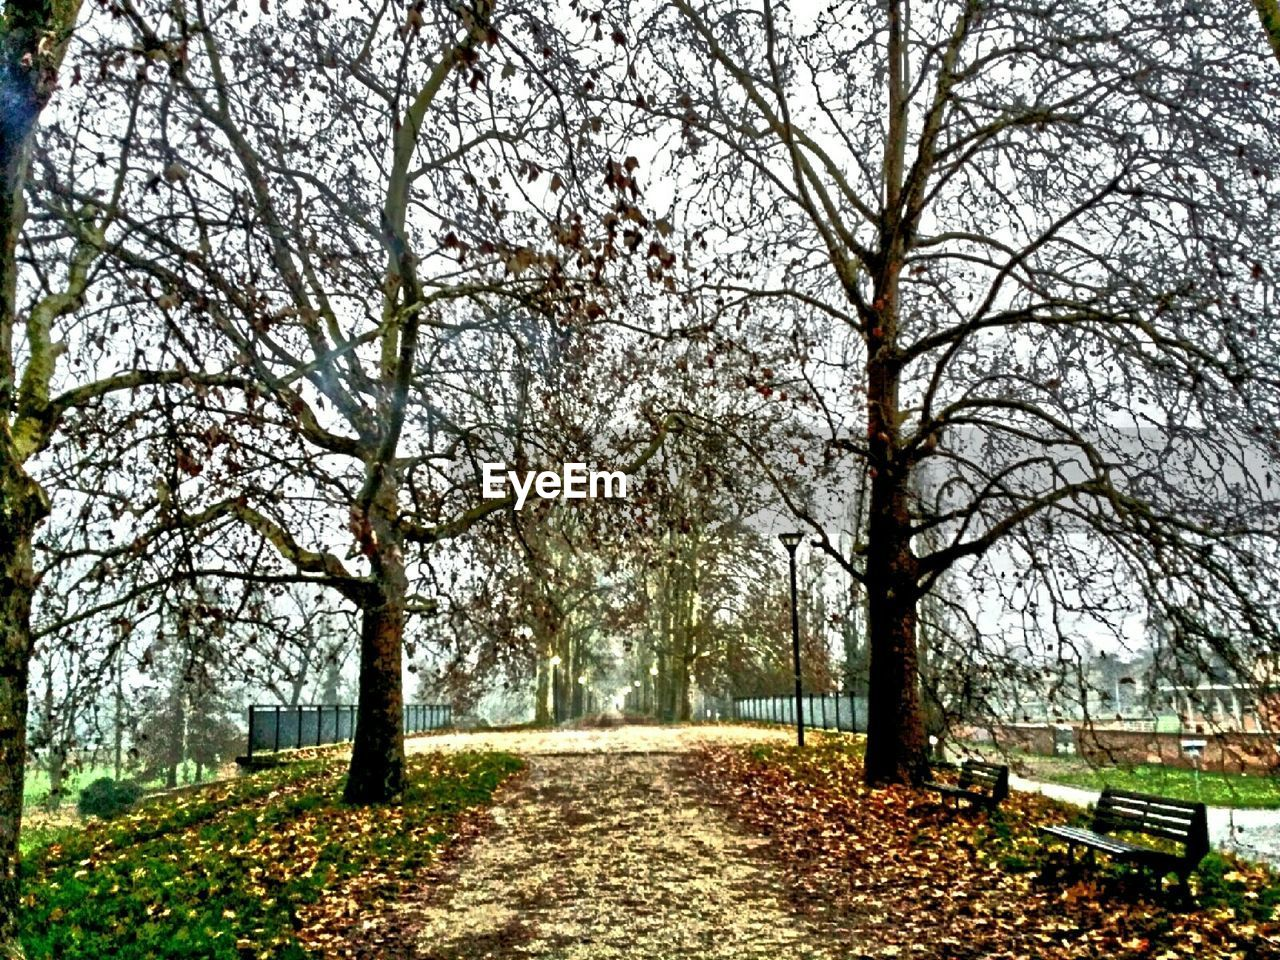 tree, nature, scenics, tranquility, beauty in nature, no people, tranquil scene, branch, day, transportation, outdoors, autumn, landscape, the way forward, growth, sky, flower, freshness